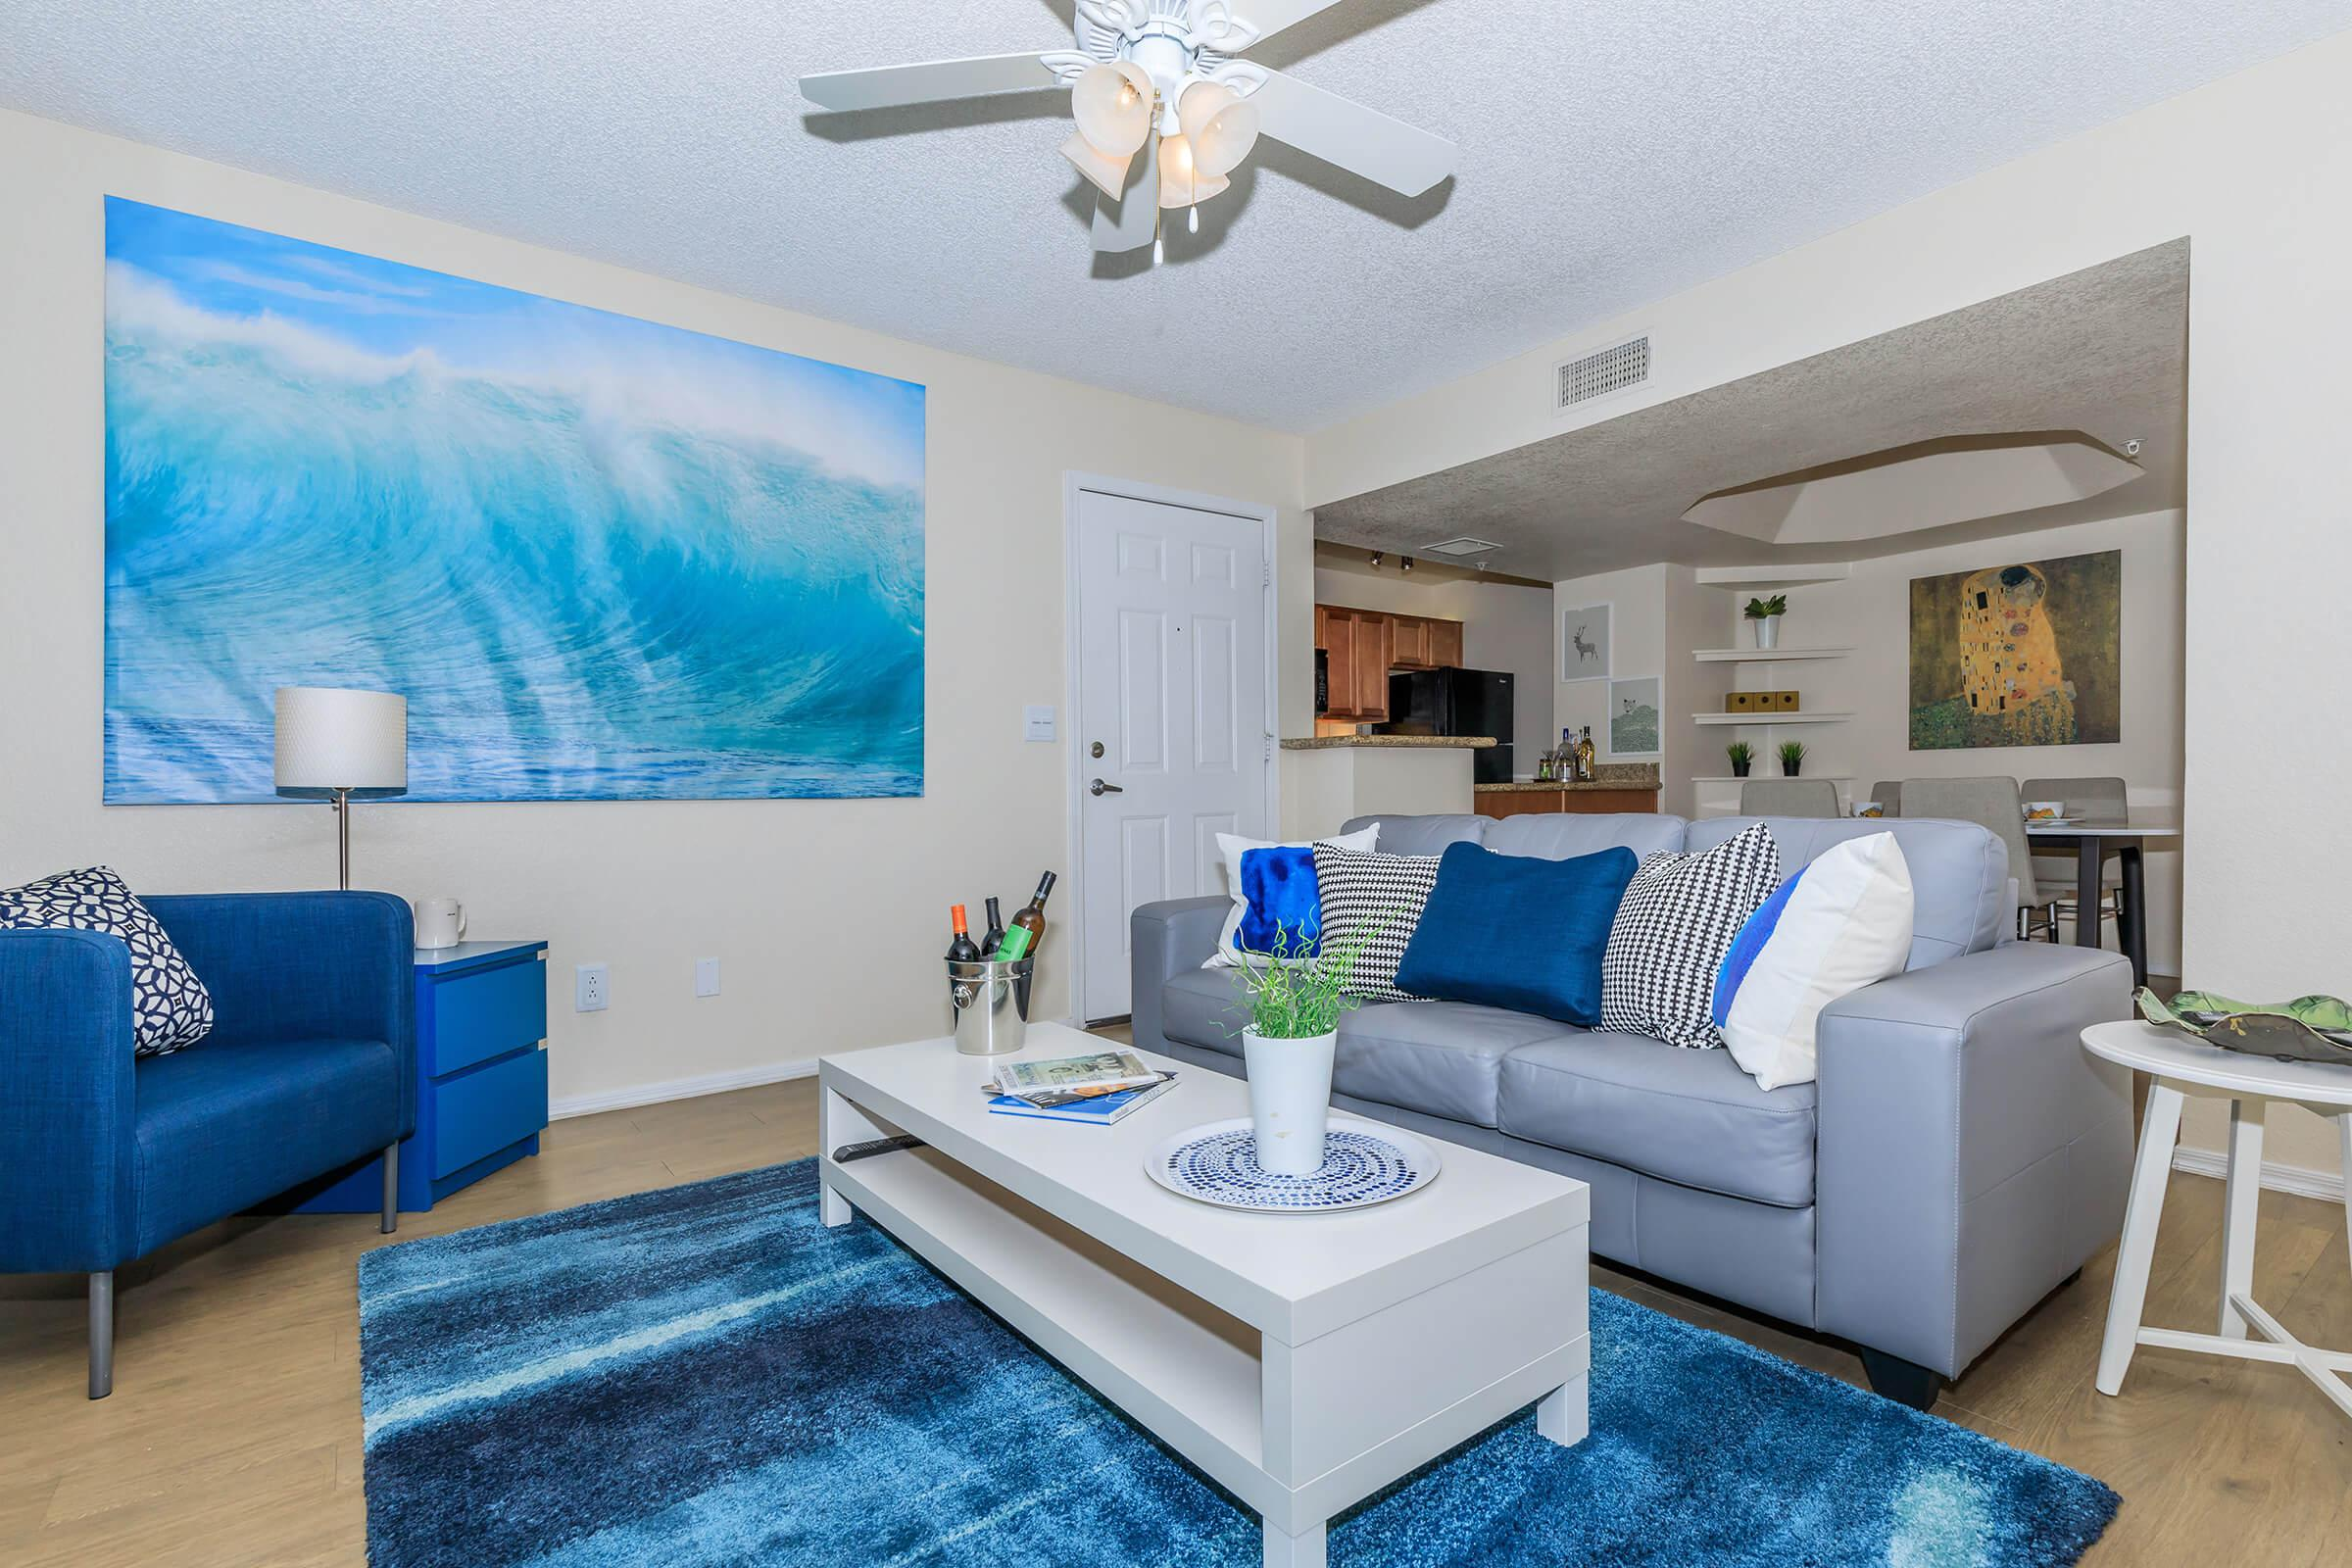 a living room with blue furniture and a flat screen tv